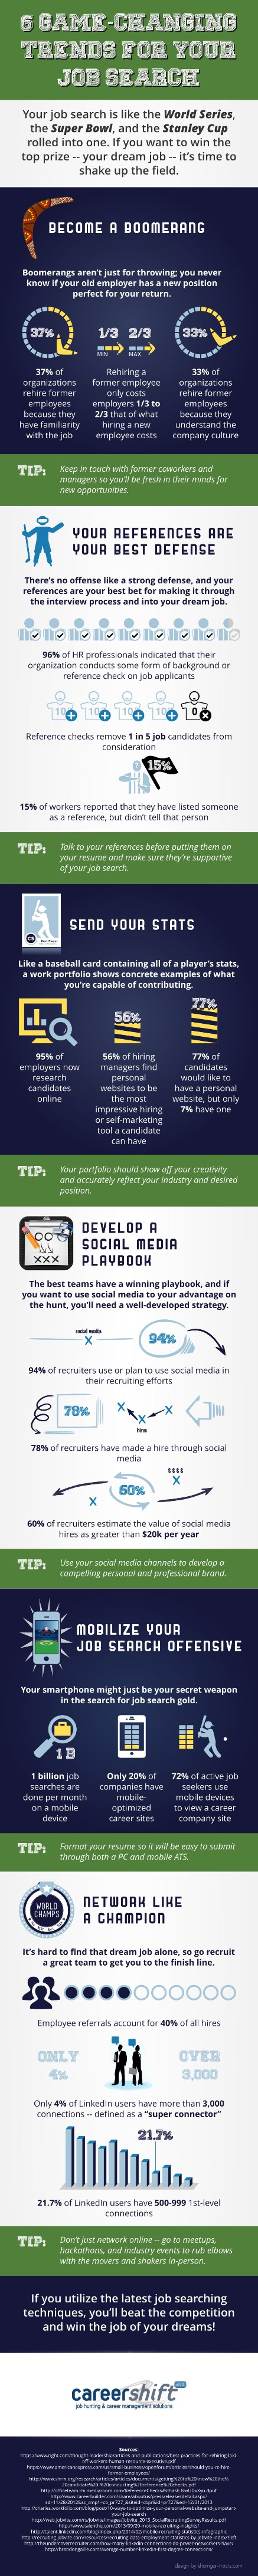 Why Your Job Search is Like Playing Sports